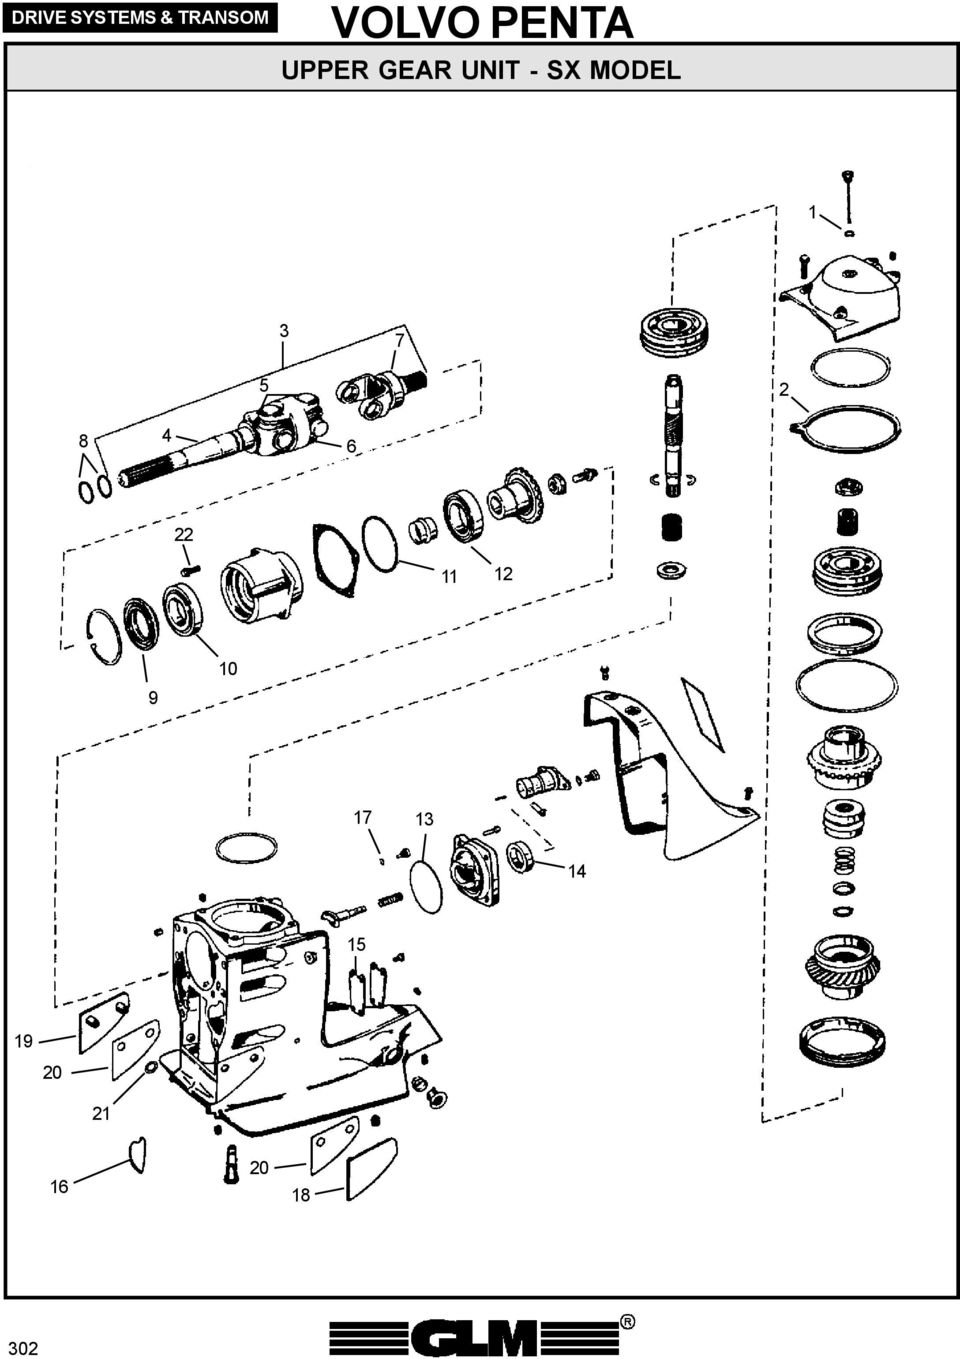 270 Outdrive Diagram On Diagram Of A Water Pump Schematic Cooling